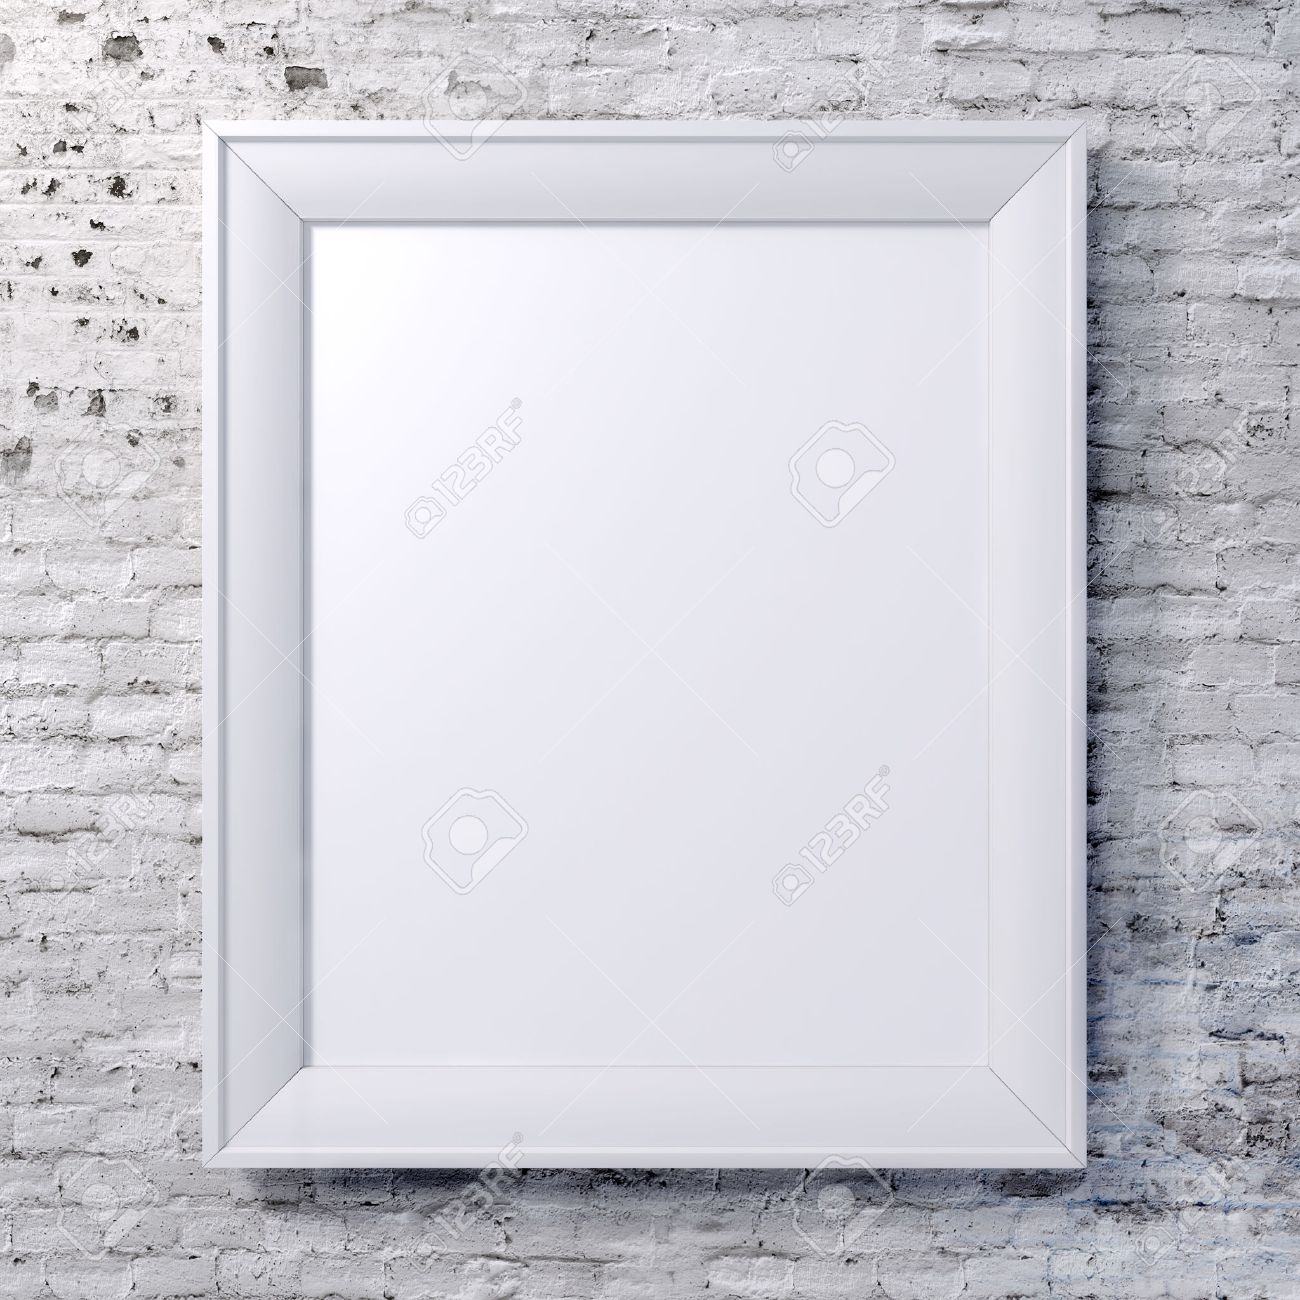 Blank Frame On Vintage Wall Stock Photo, Picture And Royalty Free ...